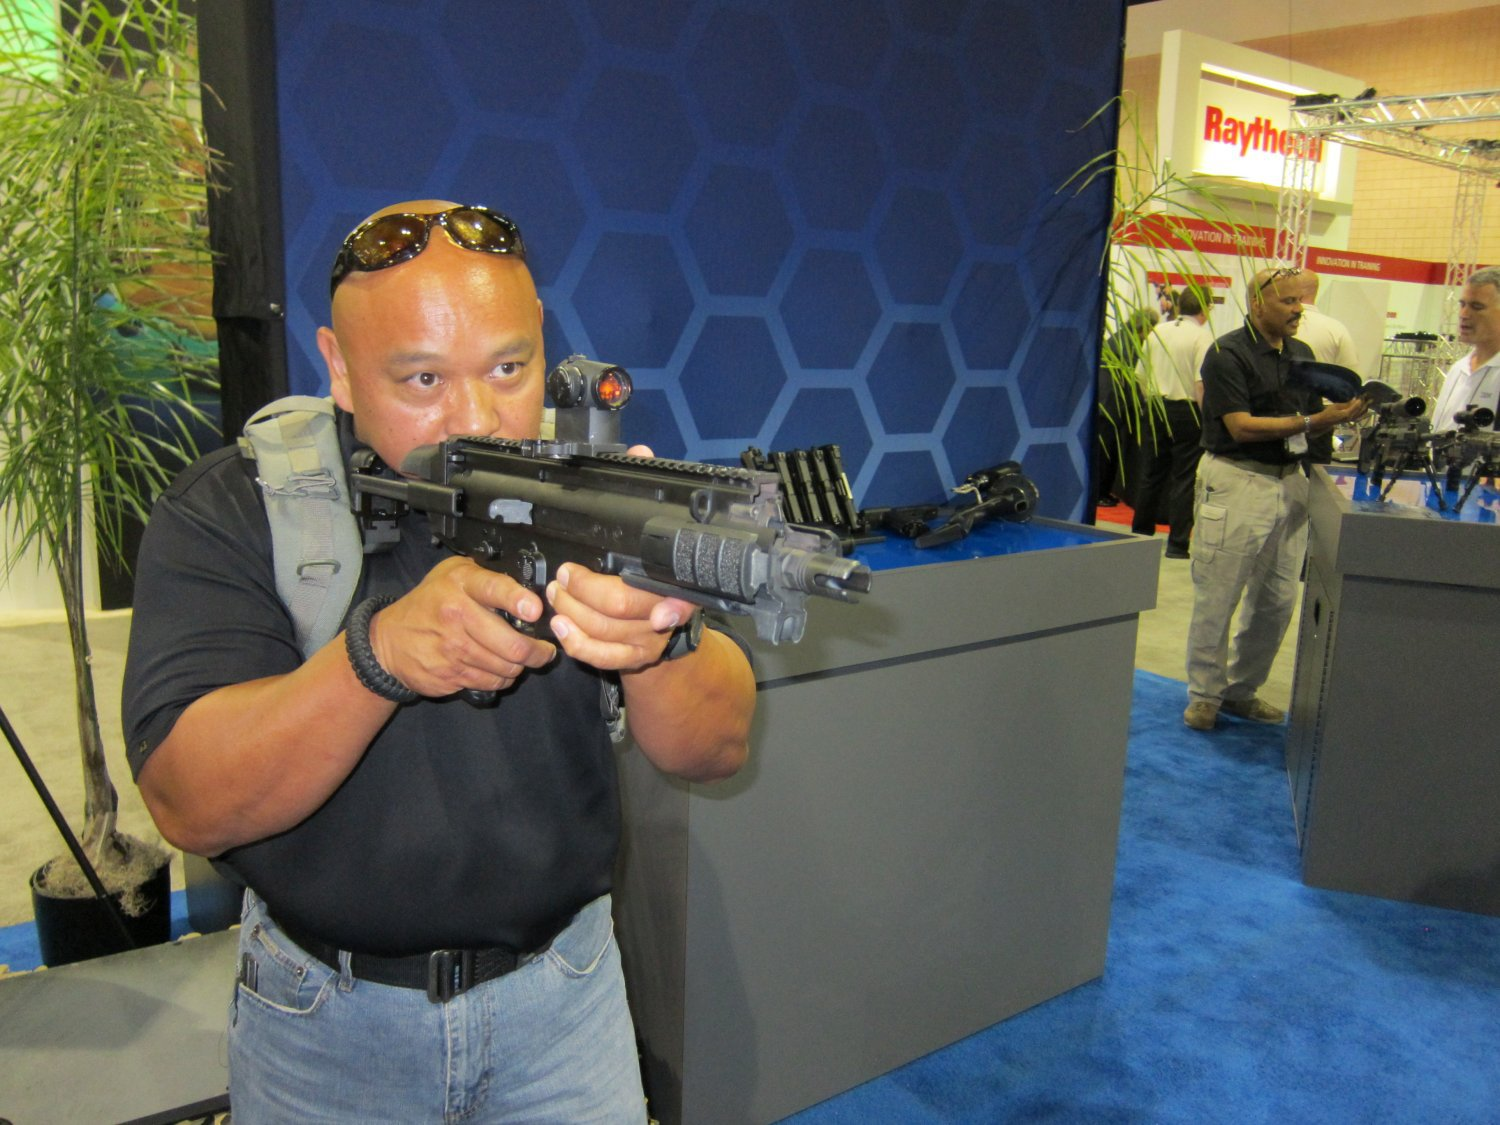 FNH USA FN SCAR PDW Compact Assault SBR 5.56mm NATO Felipe Jose SOFIC 2011 DefenseReview DR 6 <!  :en  >FN SCAR PDW (Personal Defense Weapon) Compact Select Fire 5.56mm NATO SBR for Special Operations Forces (SOF) Applications: DR Handles the Weapon at SOFIC 2011 and NDIA Small Arms Symposium 2011 (Photos!)<!  :  >